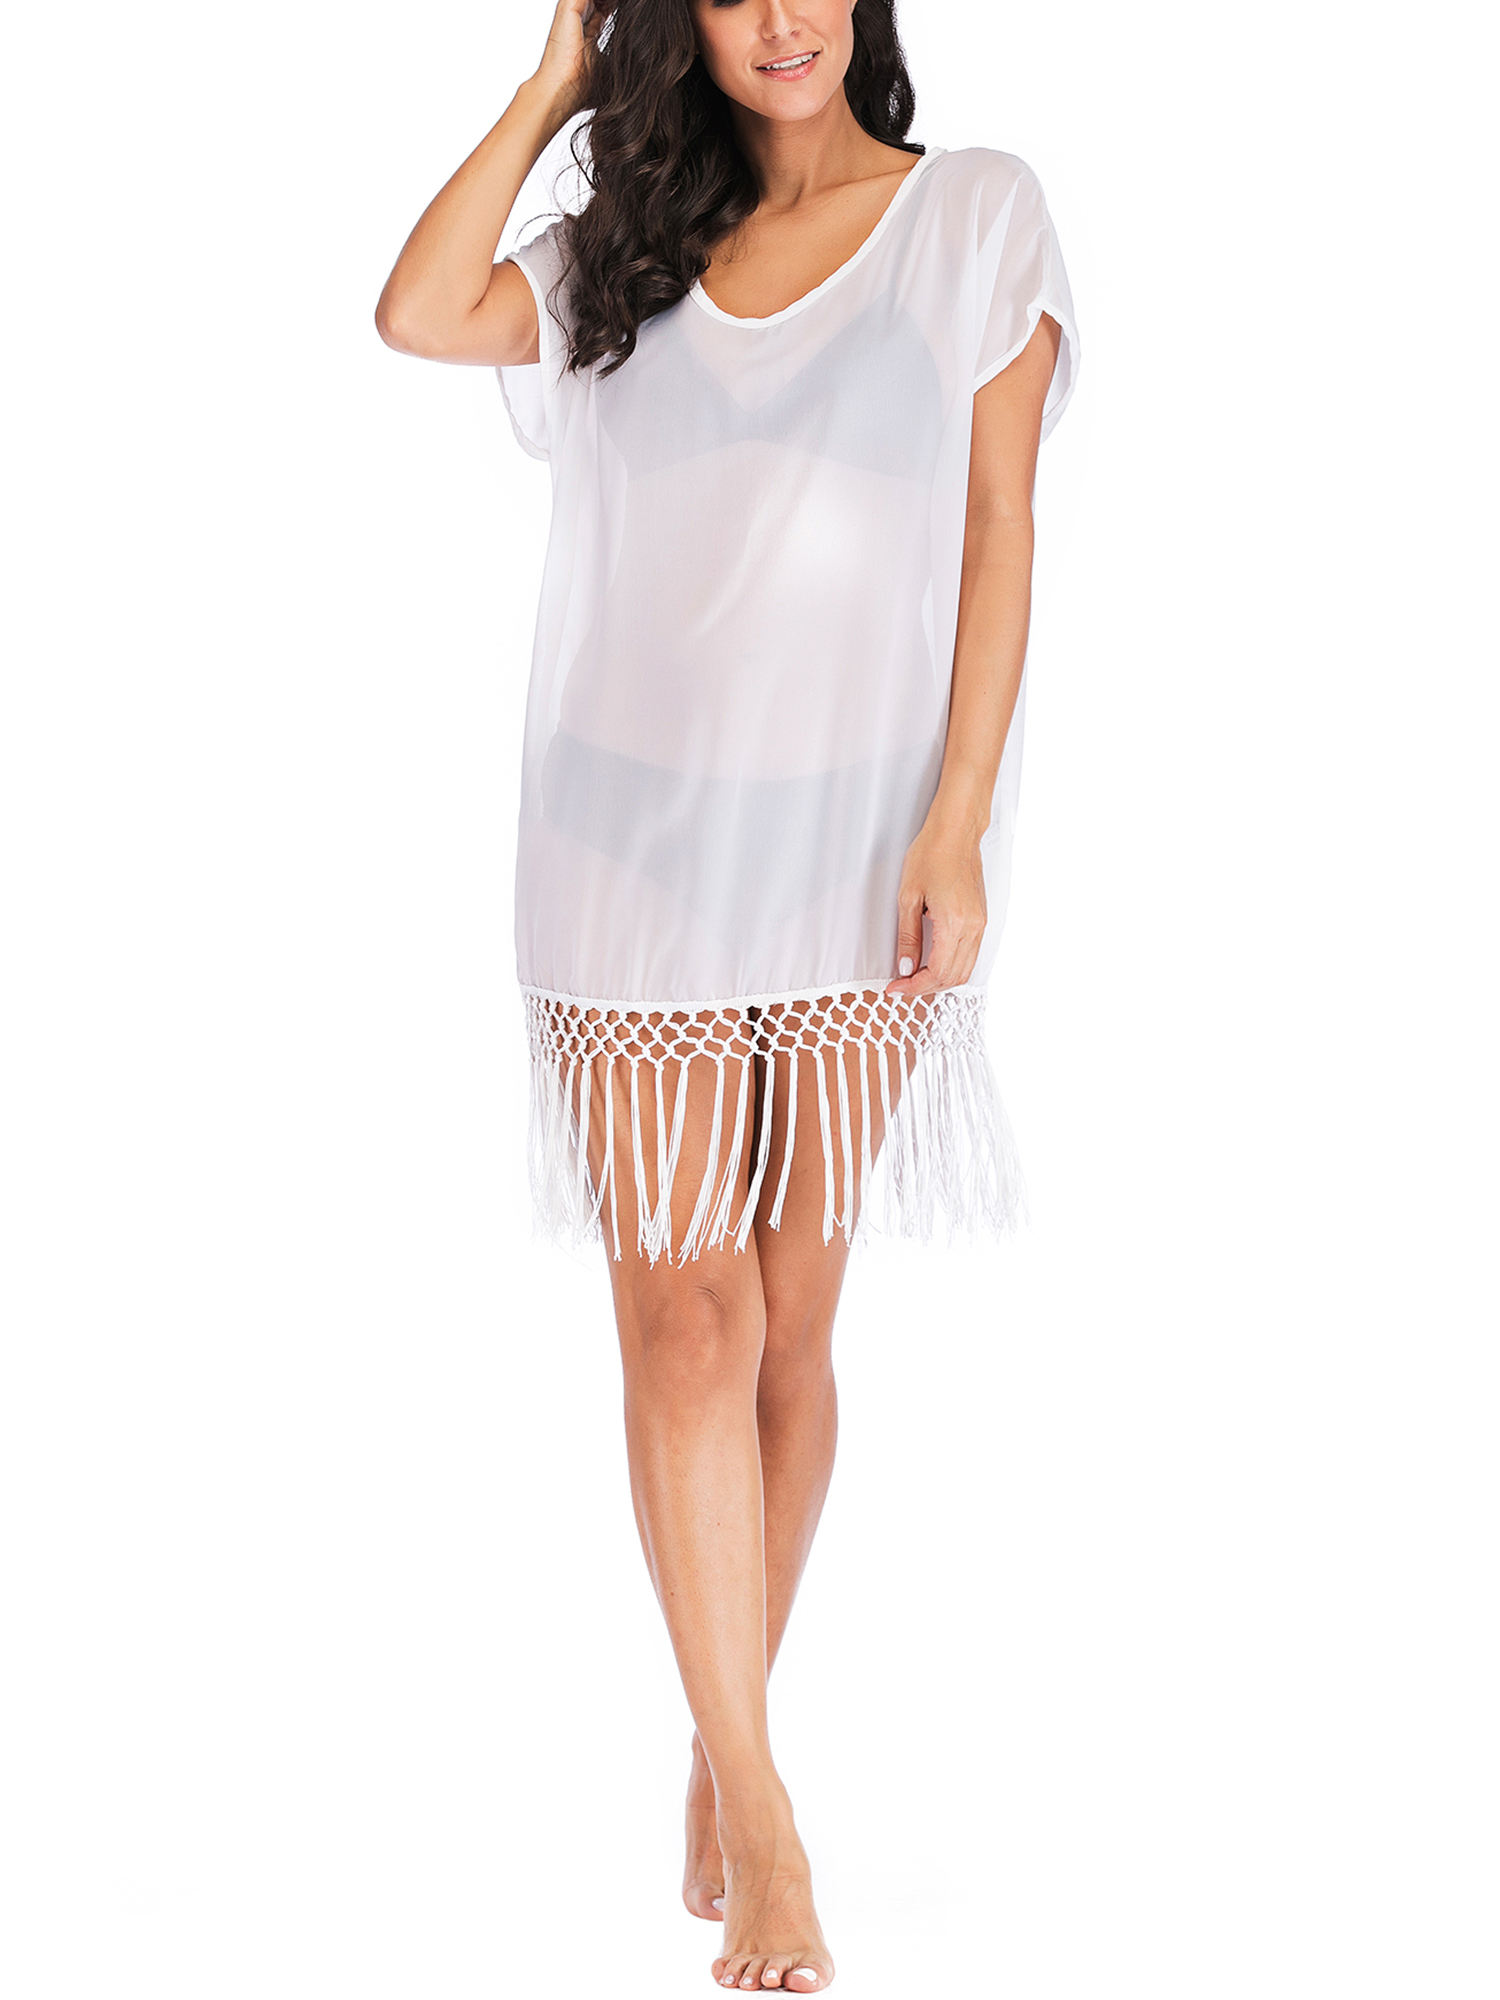 7db84ce2eba SAYFUT - SAYFUT Women Chiffon Tassel Swimsuit Cover up Beach Bikini Stylish  Pompom Tassel Trim Bathing Suit Swimwear Cover ups - Walmart.com